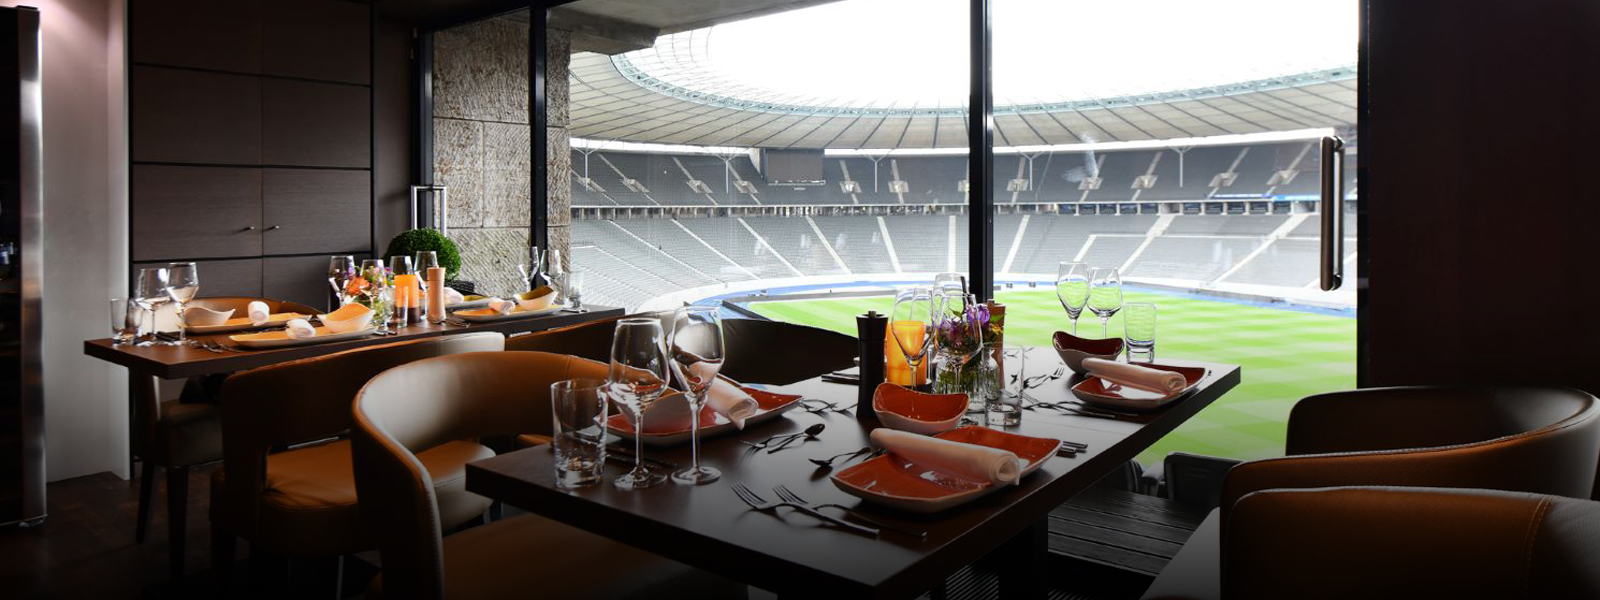 Blick aus der Grill Lounge des Olympiastadions